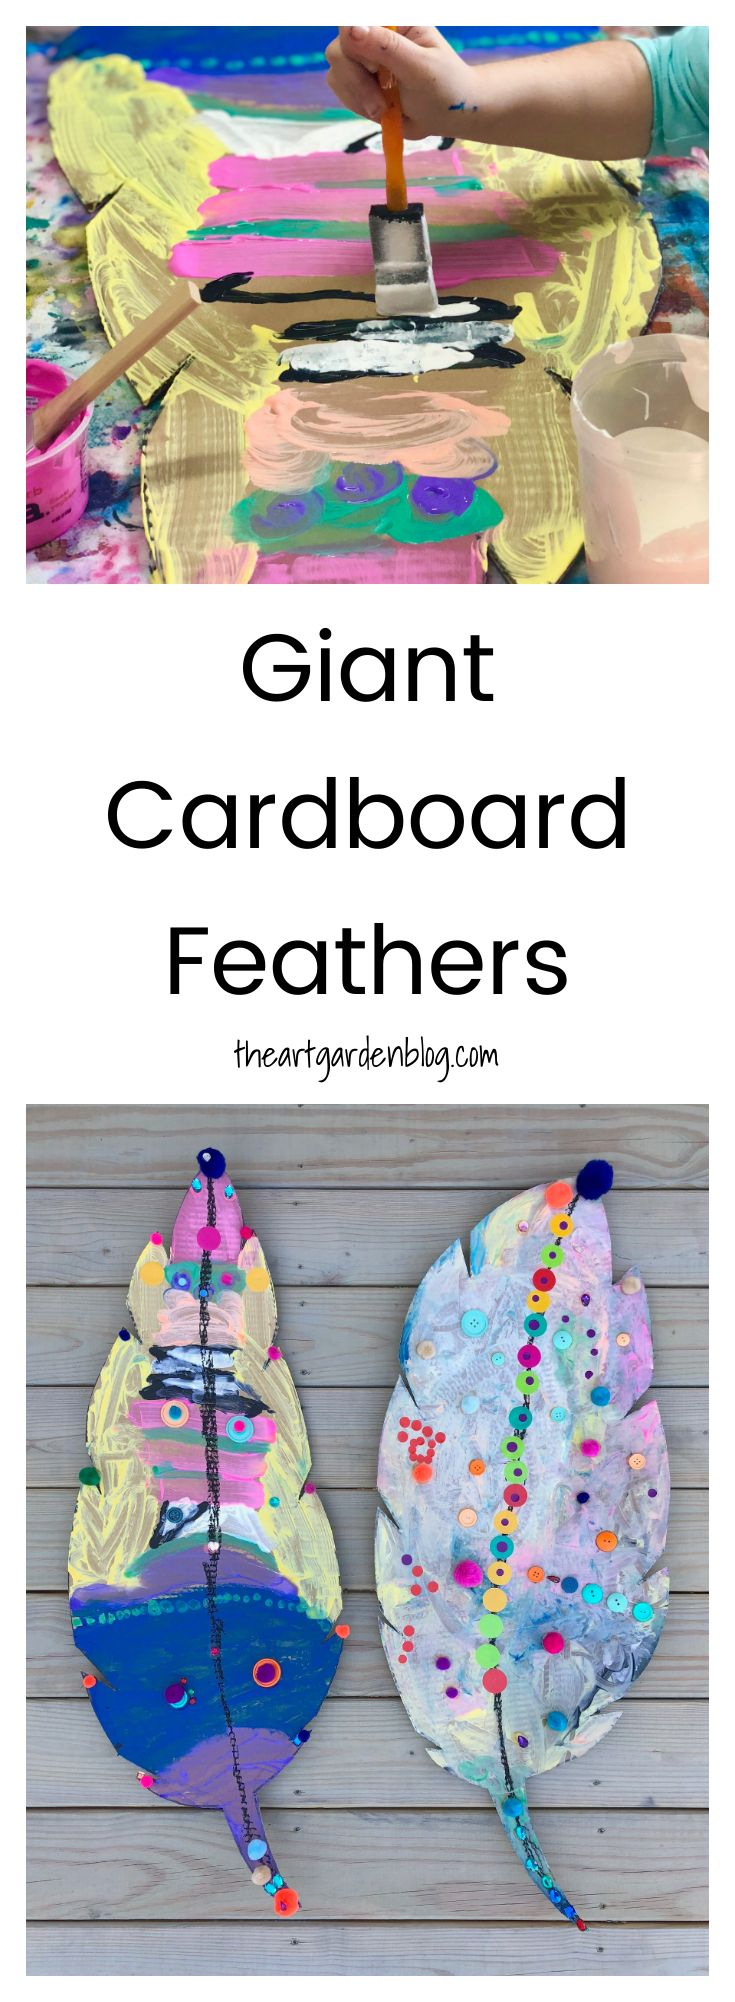 Giant Cardboard Feathers